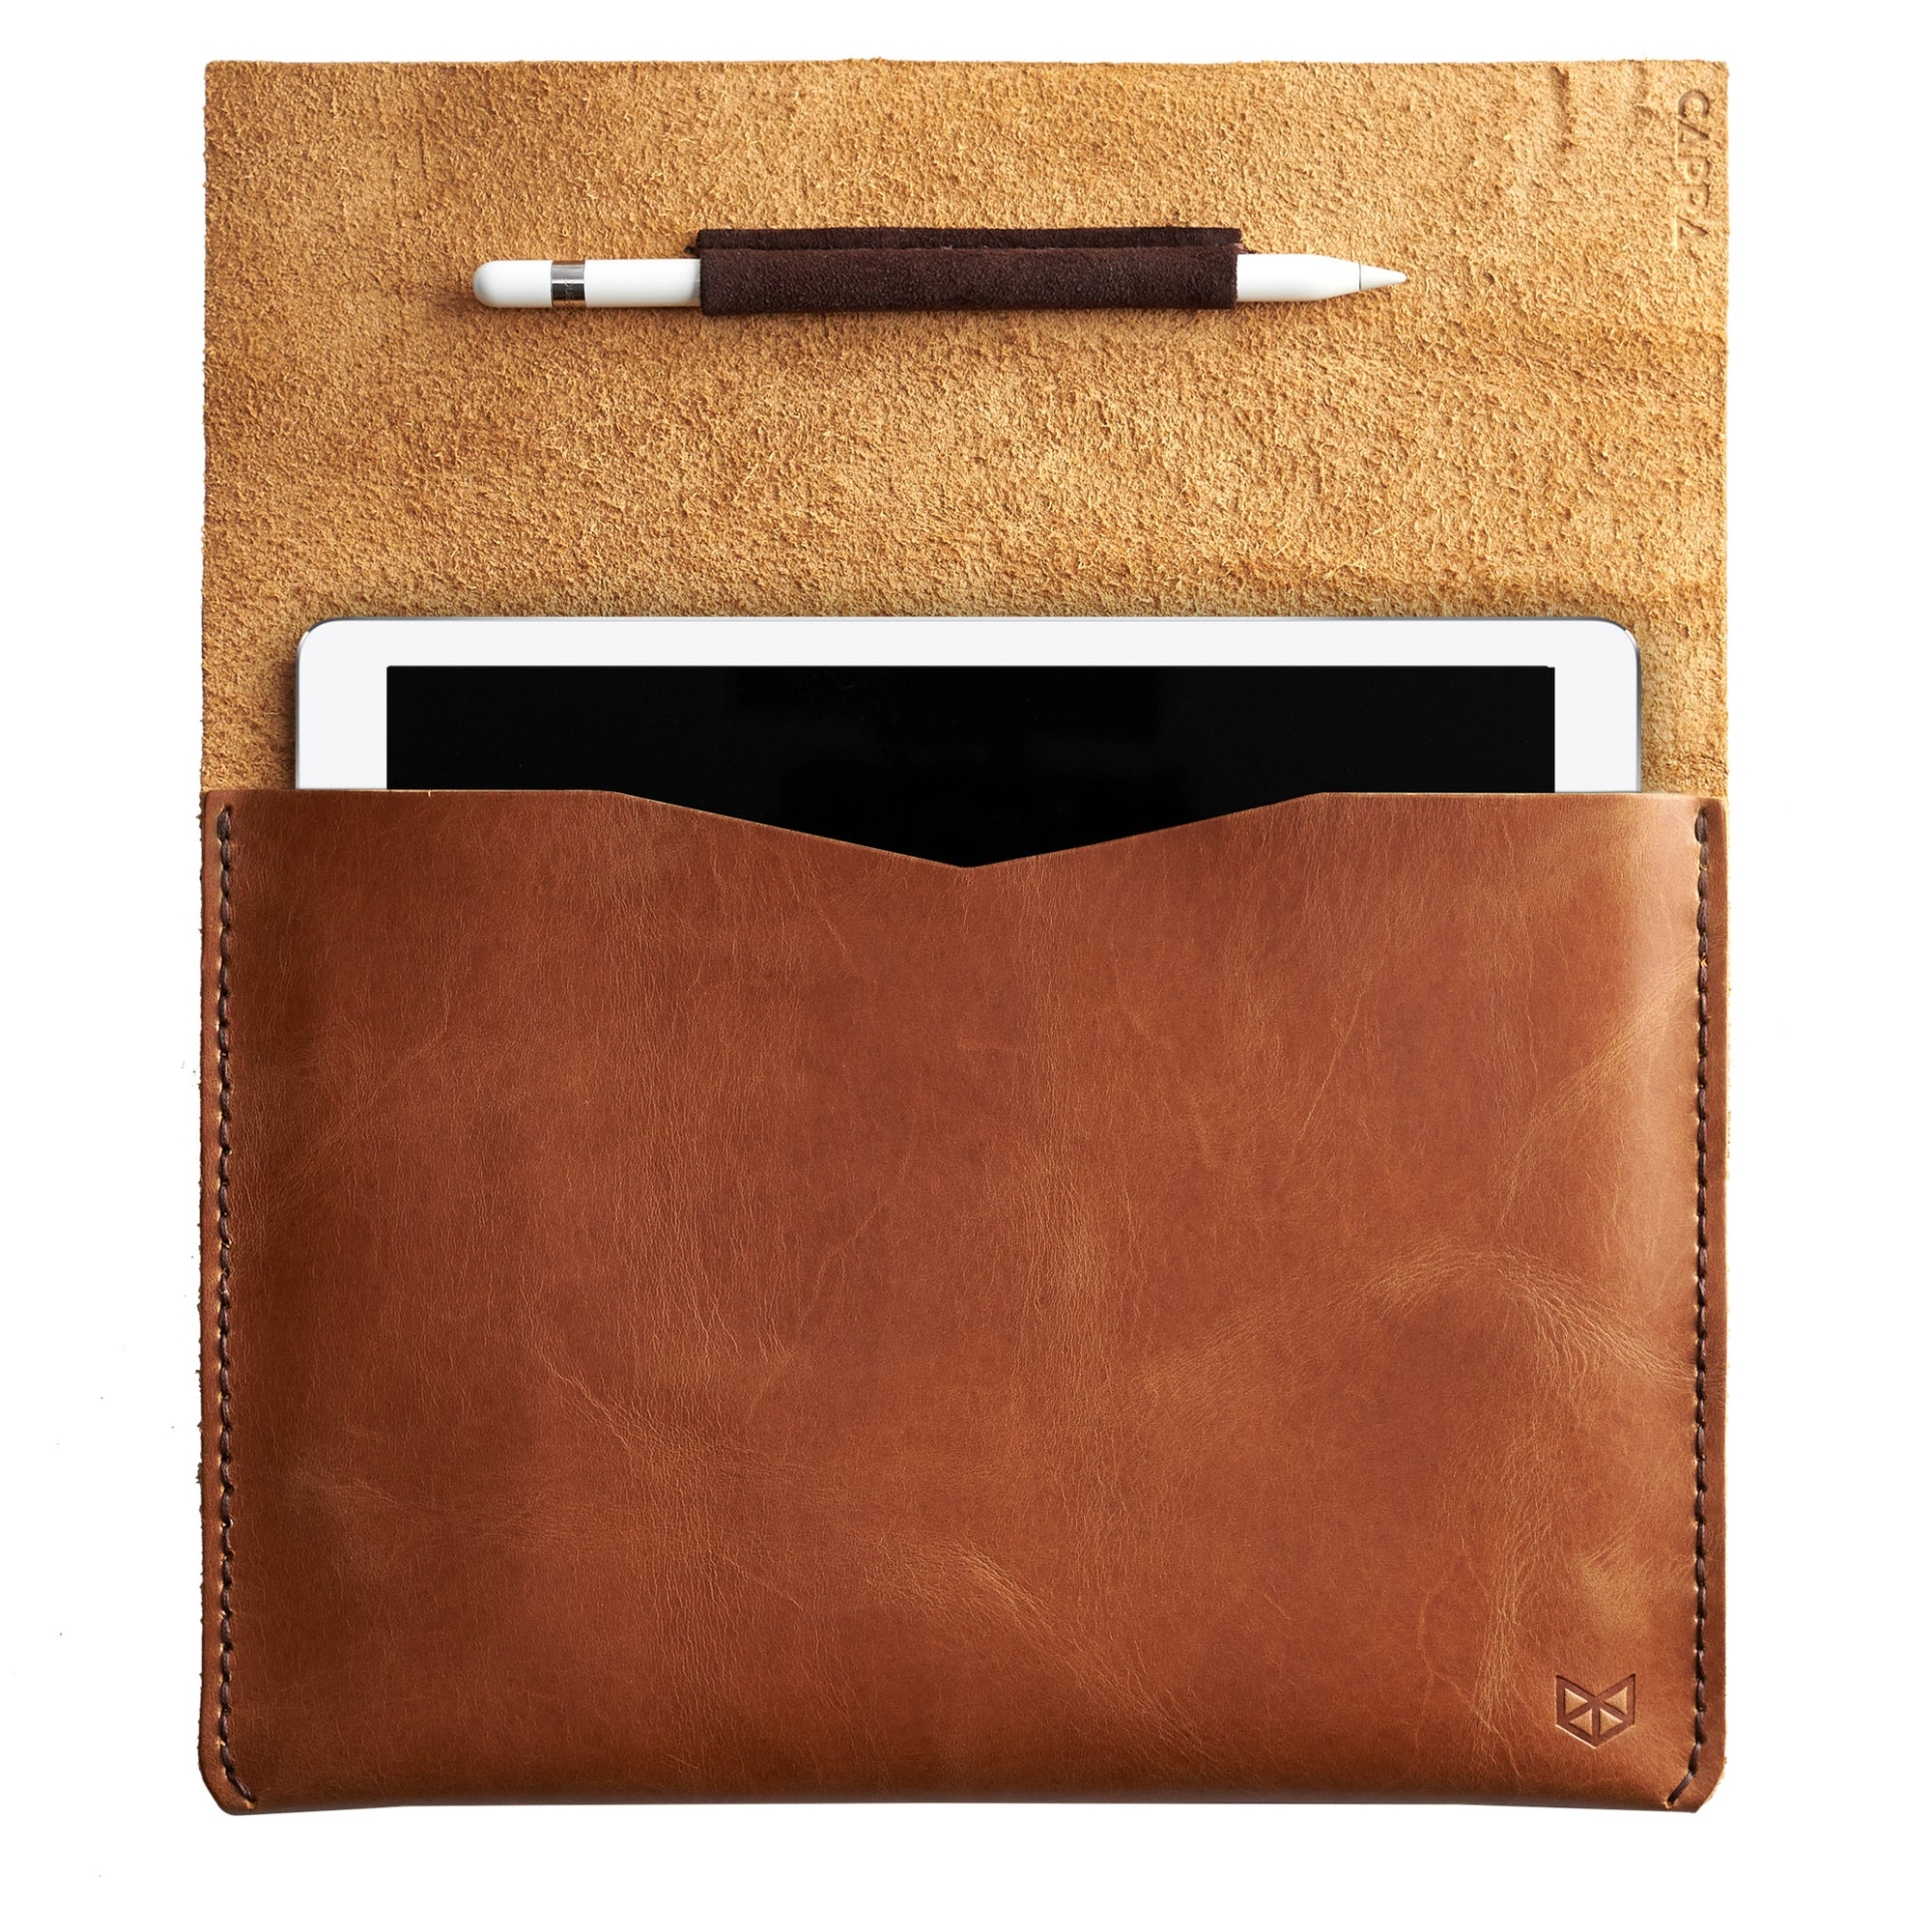 iPad pro sleeve, light brown color. Unique mens leather case for tablet